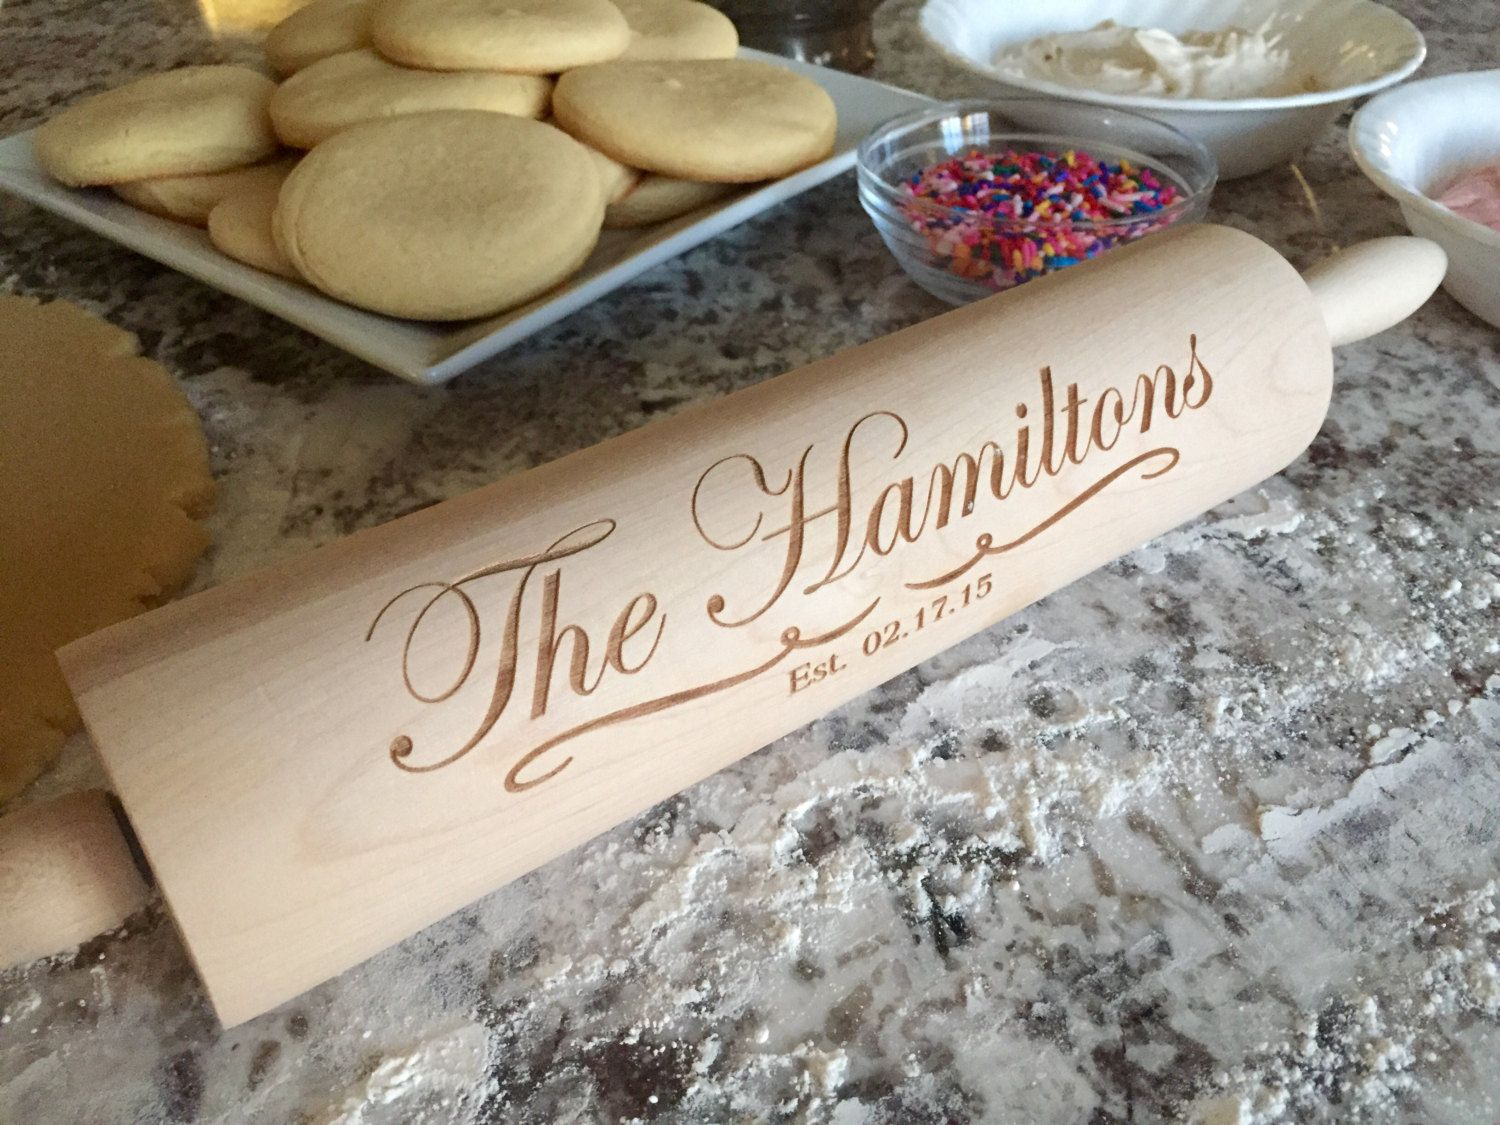 Personalized Rolling Pins - Hamilton Style #Etsy #Favorite #EtsyFav #Share #EtsyShop Shared by #BaliTribalJewelry http://etsy.me/1sDZ302